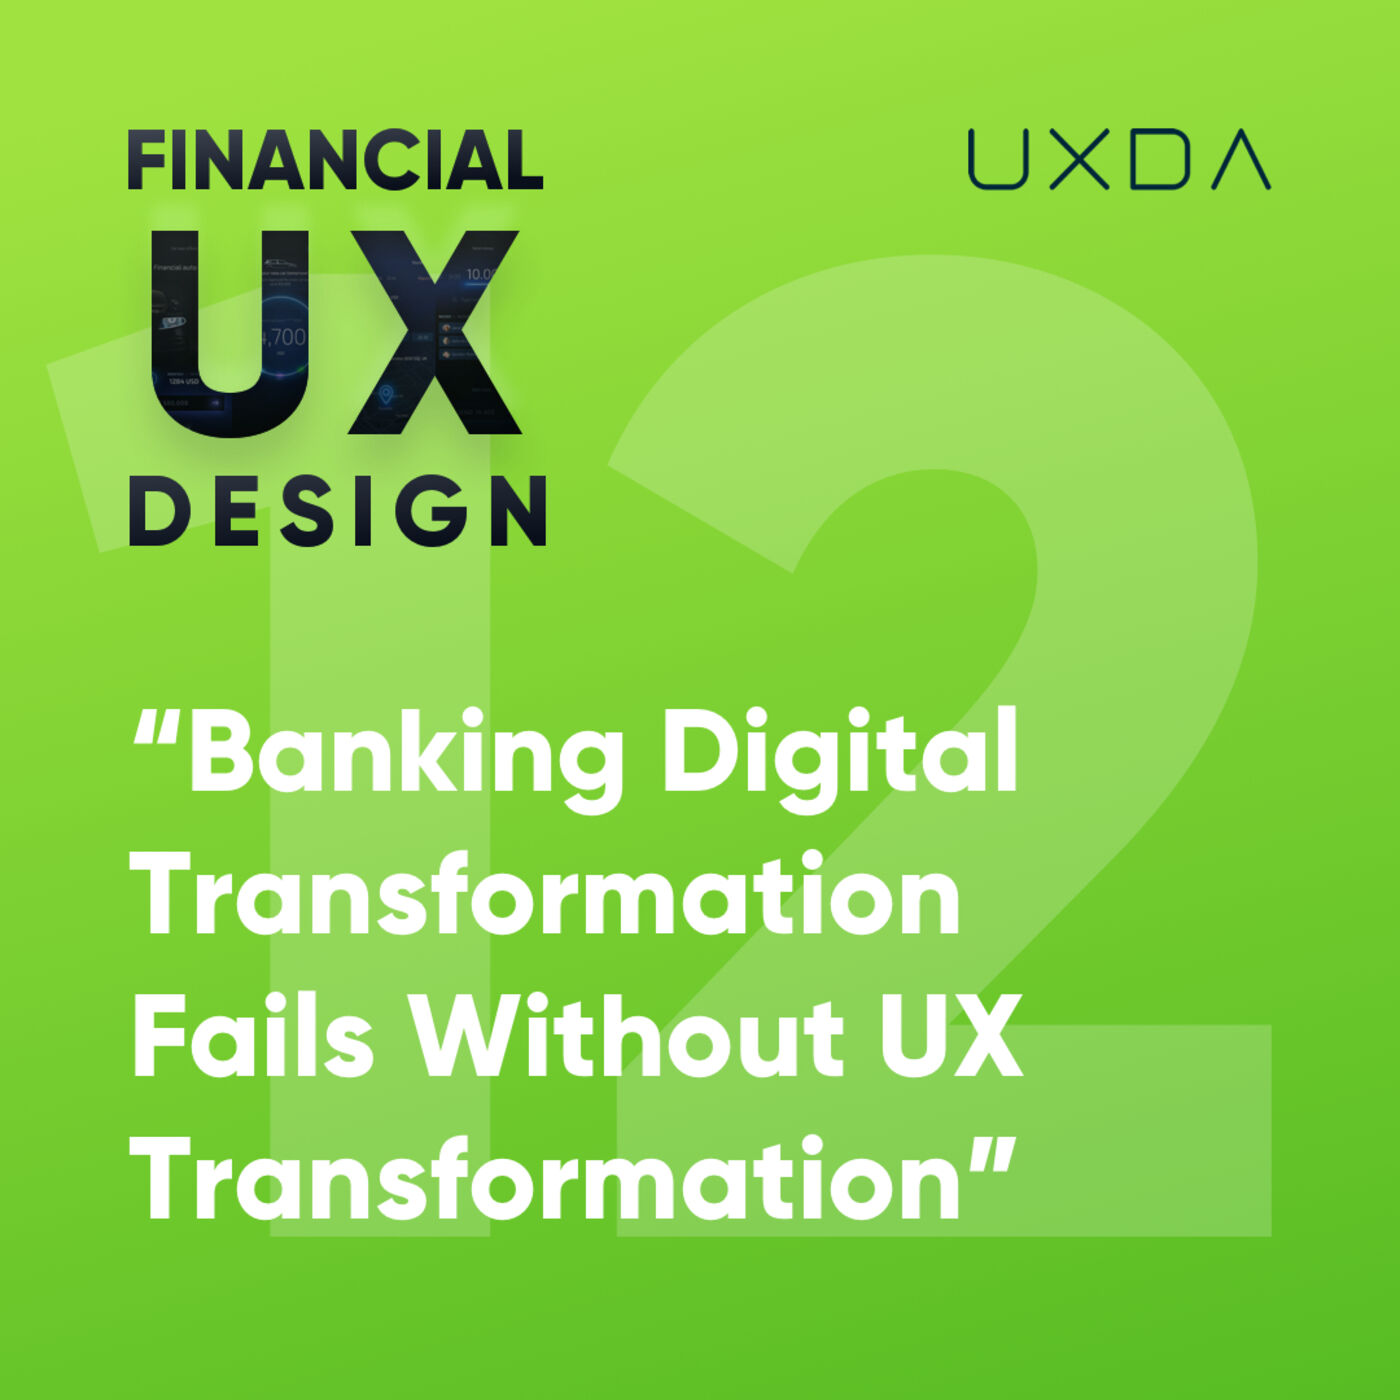 #12 Banking Digital Transformation Fails Without UX Transformation